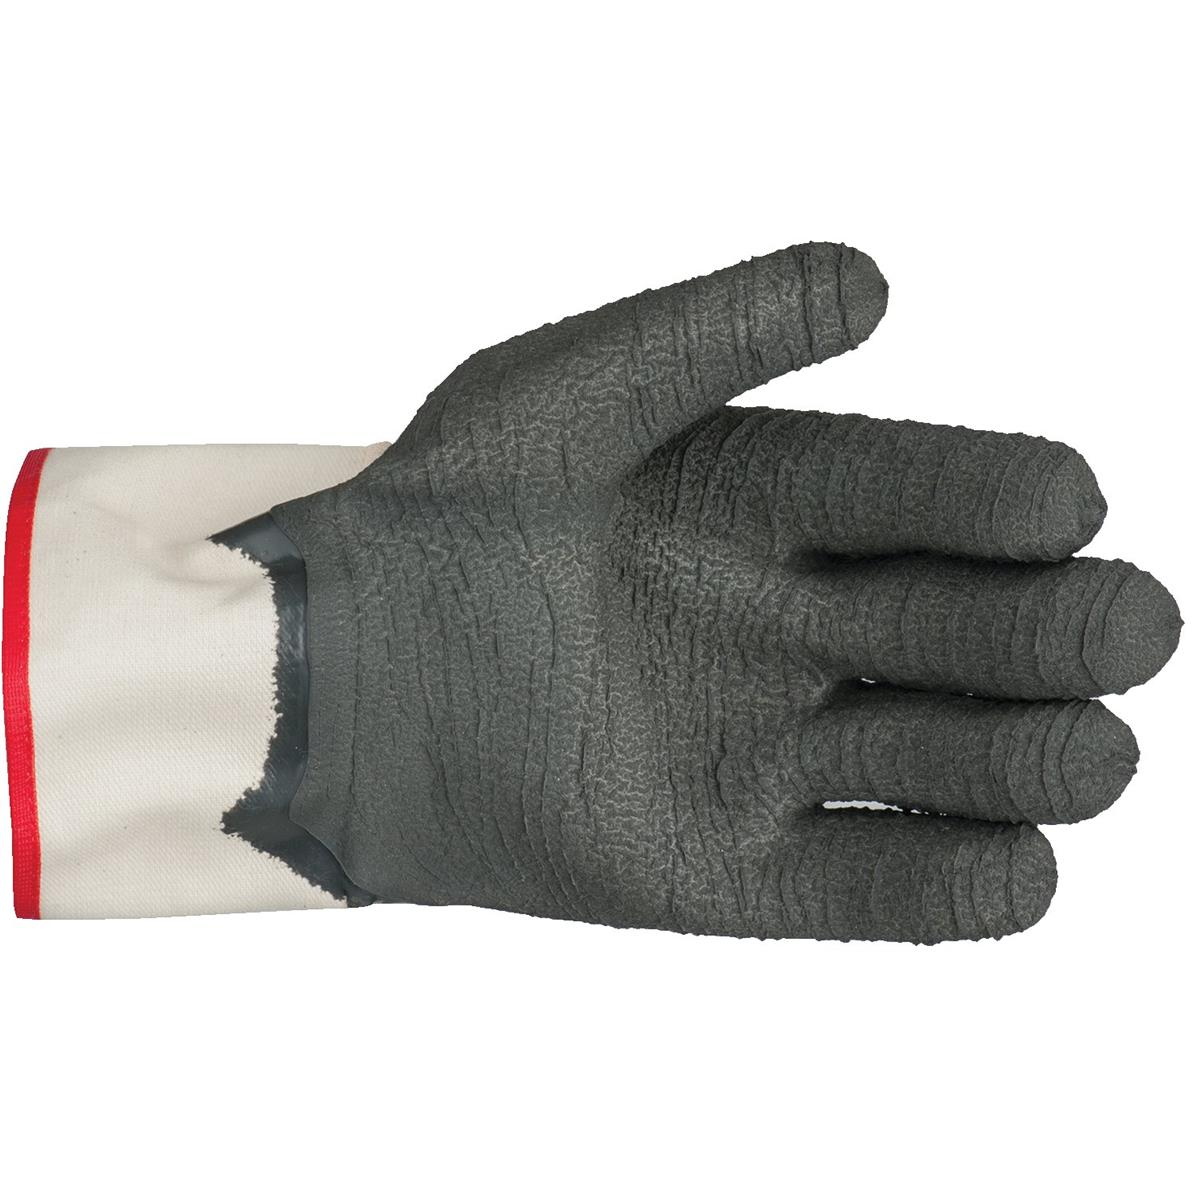 Showa Cut-Resistant Work Gloves with Safety Cuff